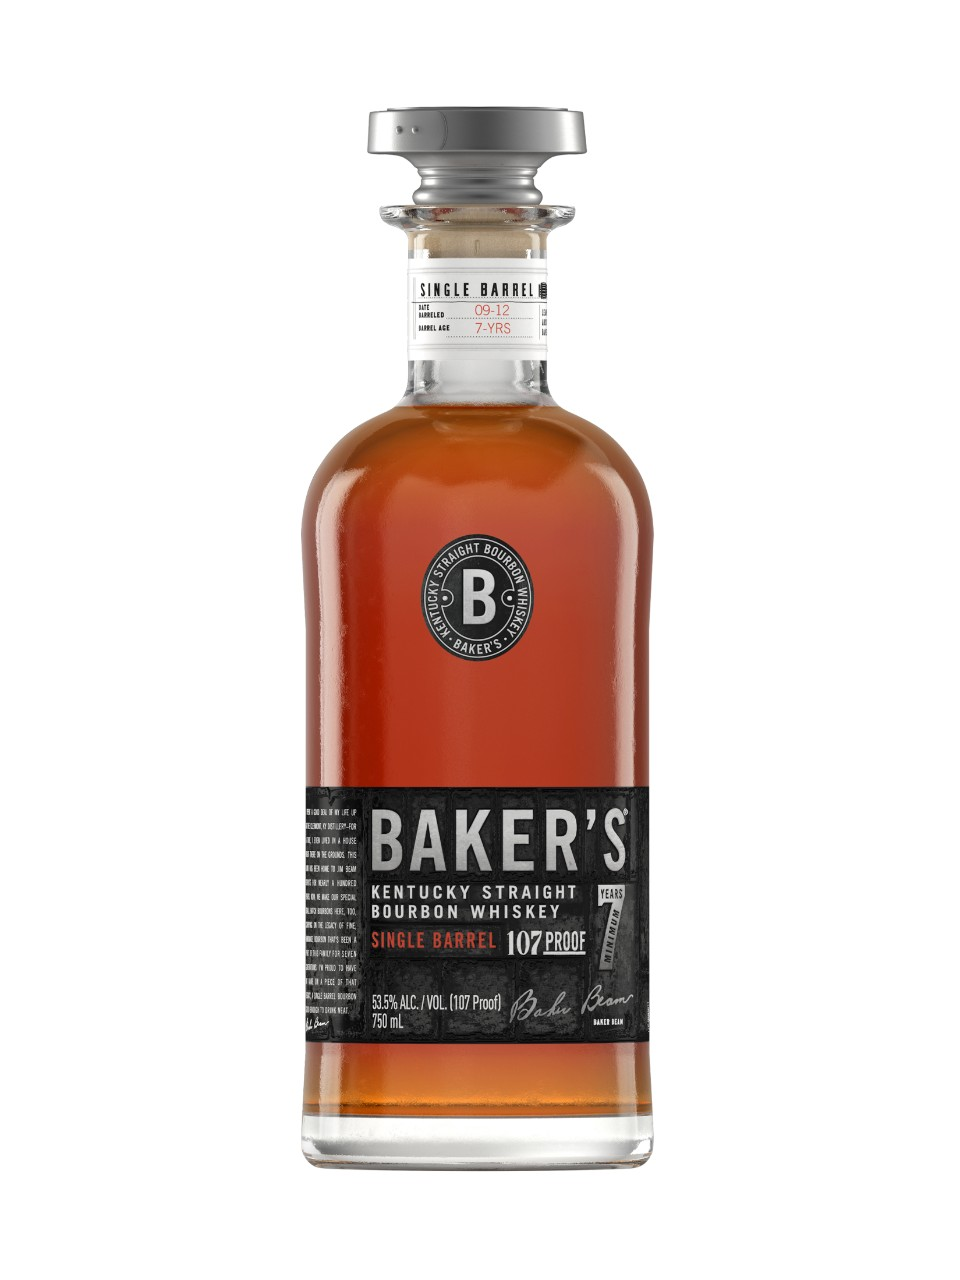 Kentucky Straight Bourbon Whiskey Baker's